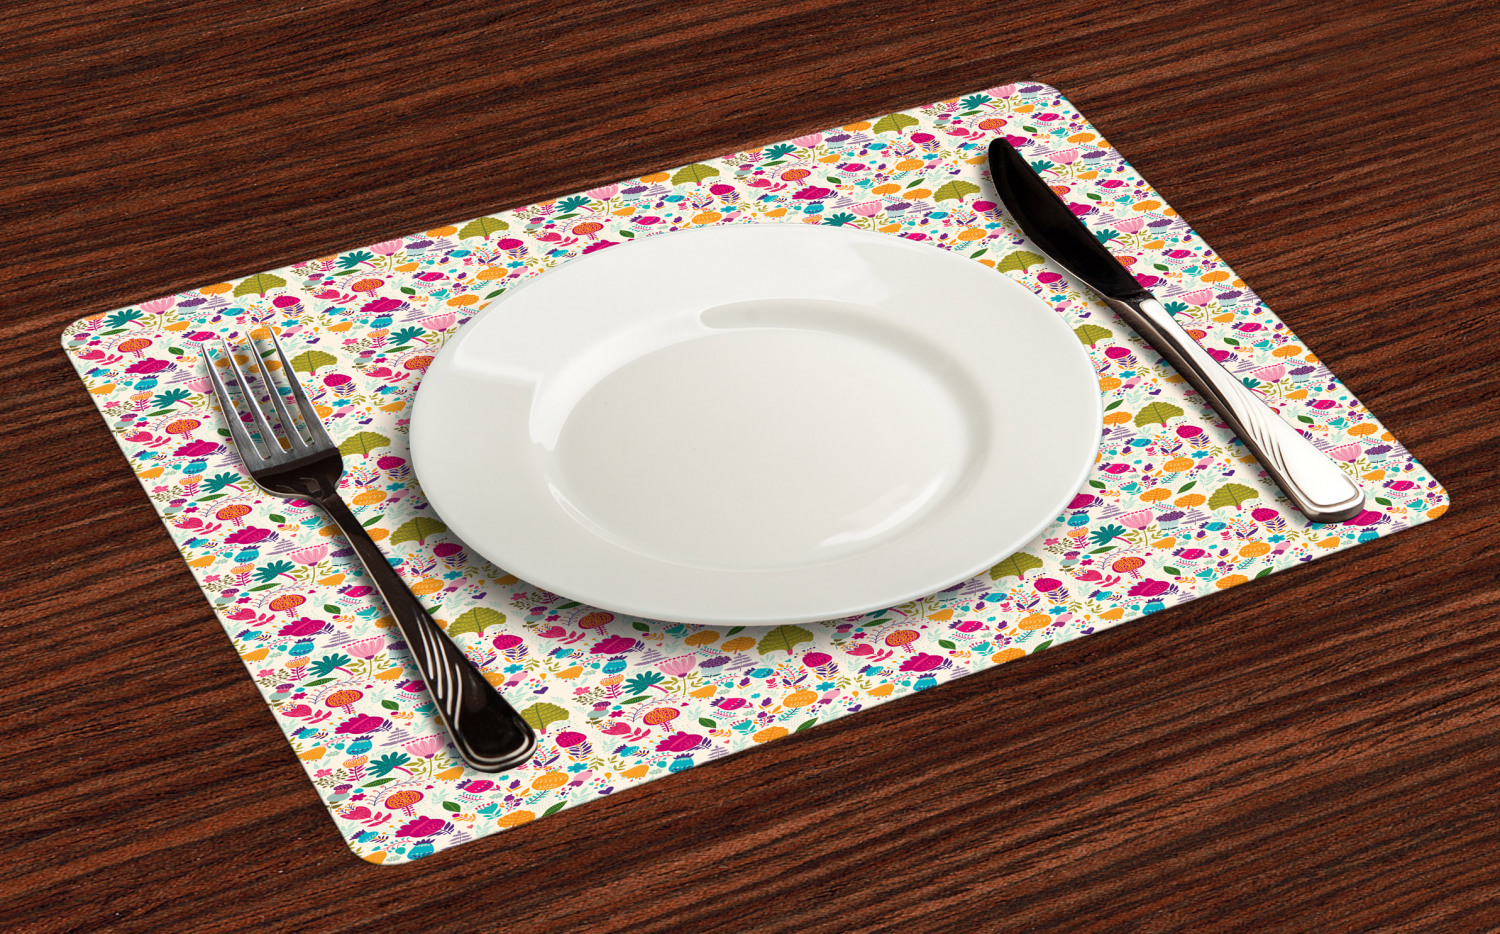 Ambesonne-Flower-Pattern-Placemat-Set-of-4-Fabric-Place-Mats-for-Table-Decor thumbnail 161